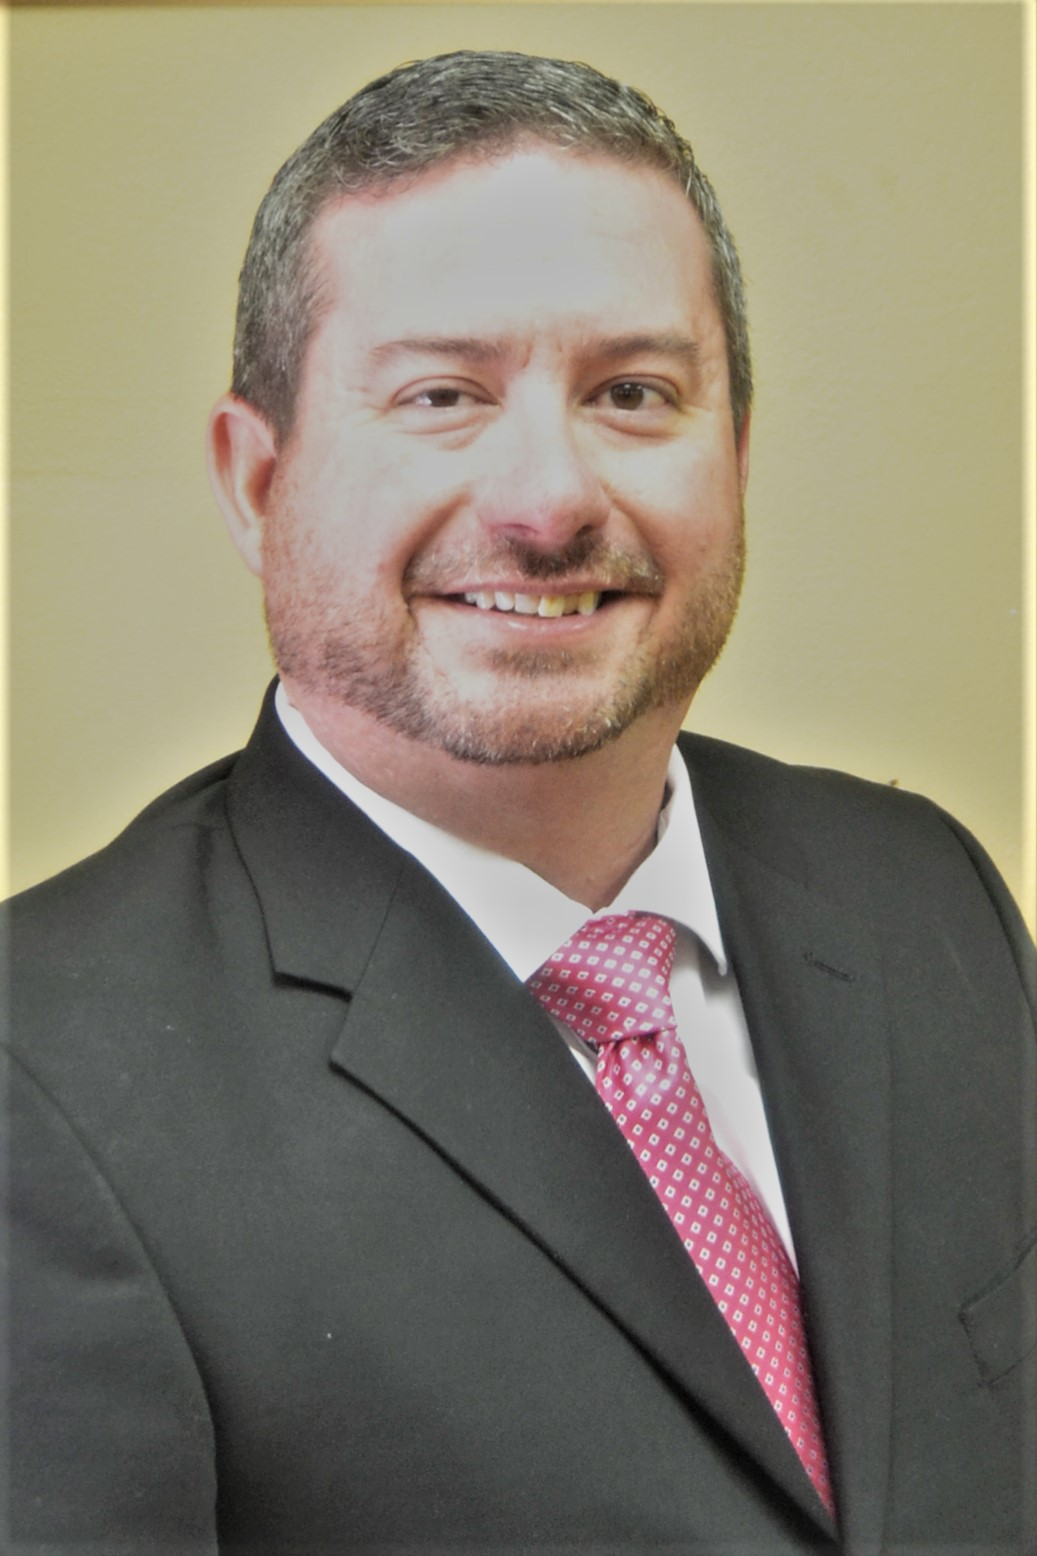 MAYOR PRO TEM GREG LEWELLEN  Mayor Pro Tem Greg Lewellen is a long time resident of Friona, Texas. He was elected into office in May of 2018 and is currently serving in year two of his two-year-term.